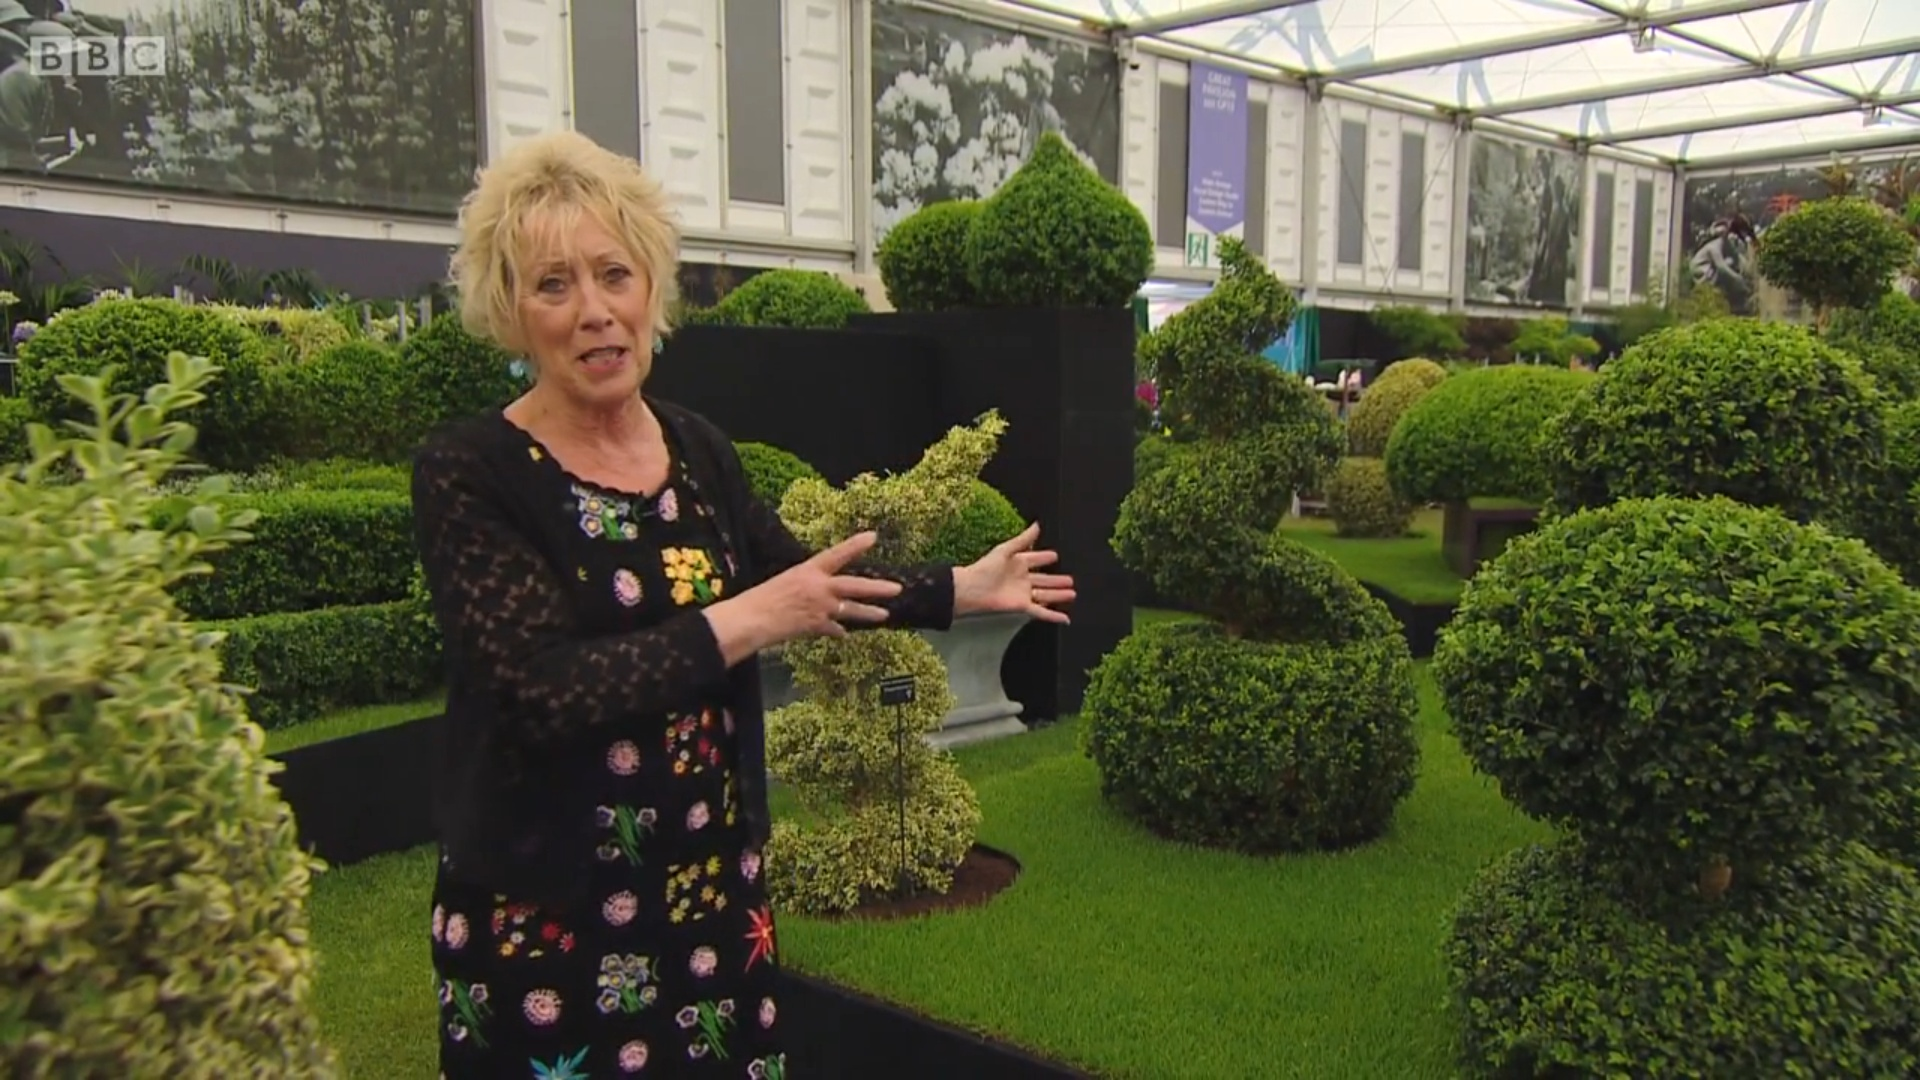 """Carol Klien on the BBC's live coverage described the Topiary Arts display as having """"Pure drama & absolute impact"""""""